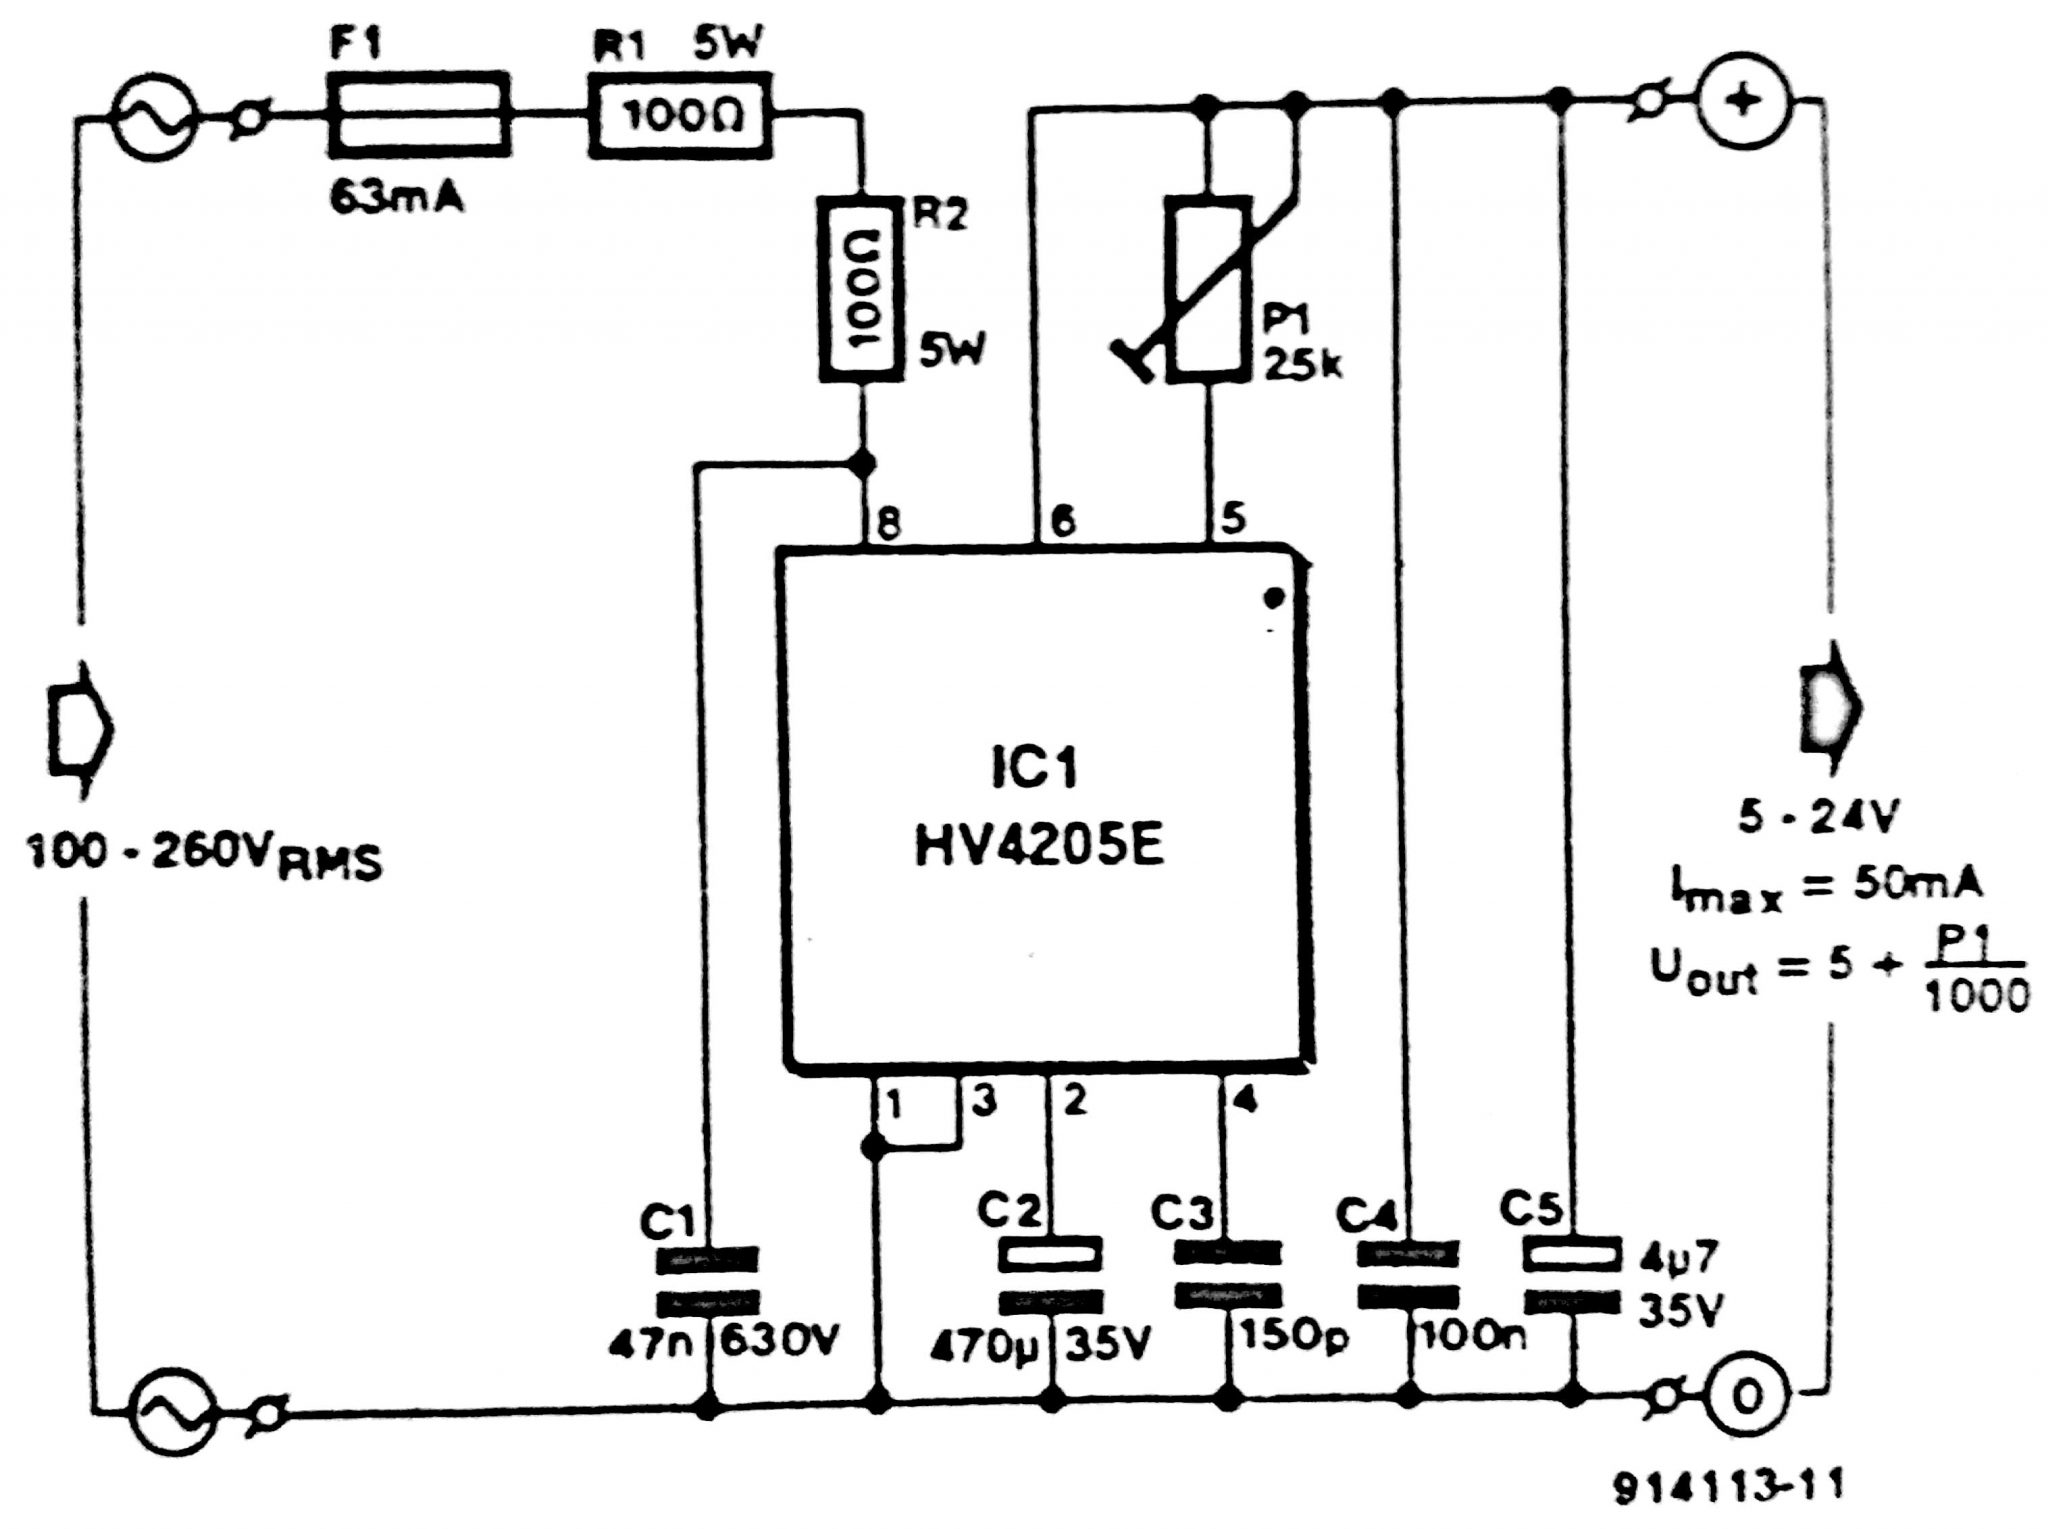 Dc To Ac Wiring Diagram Diagrams Boat Accessory Low Power Inverter Circuit And For Dummies